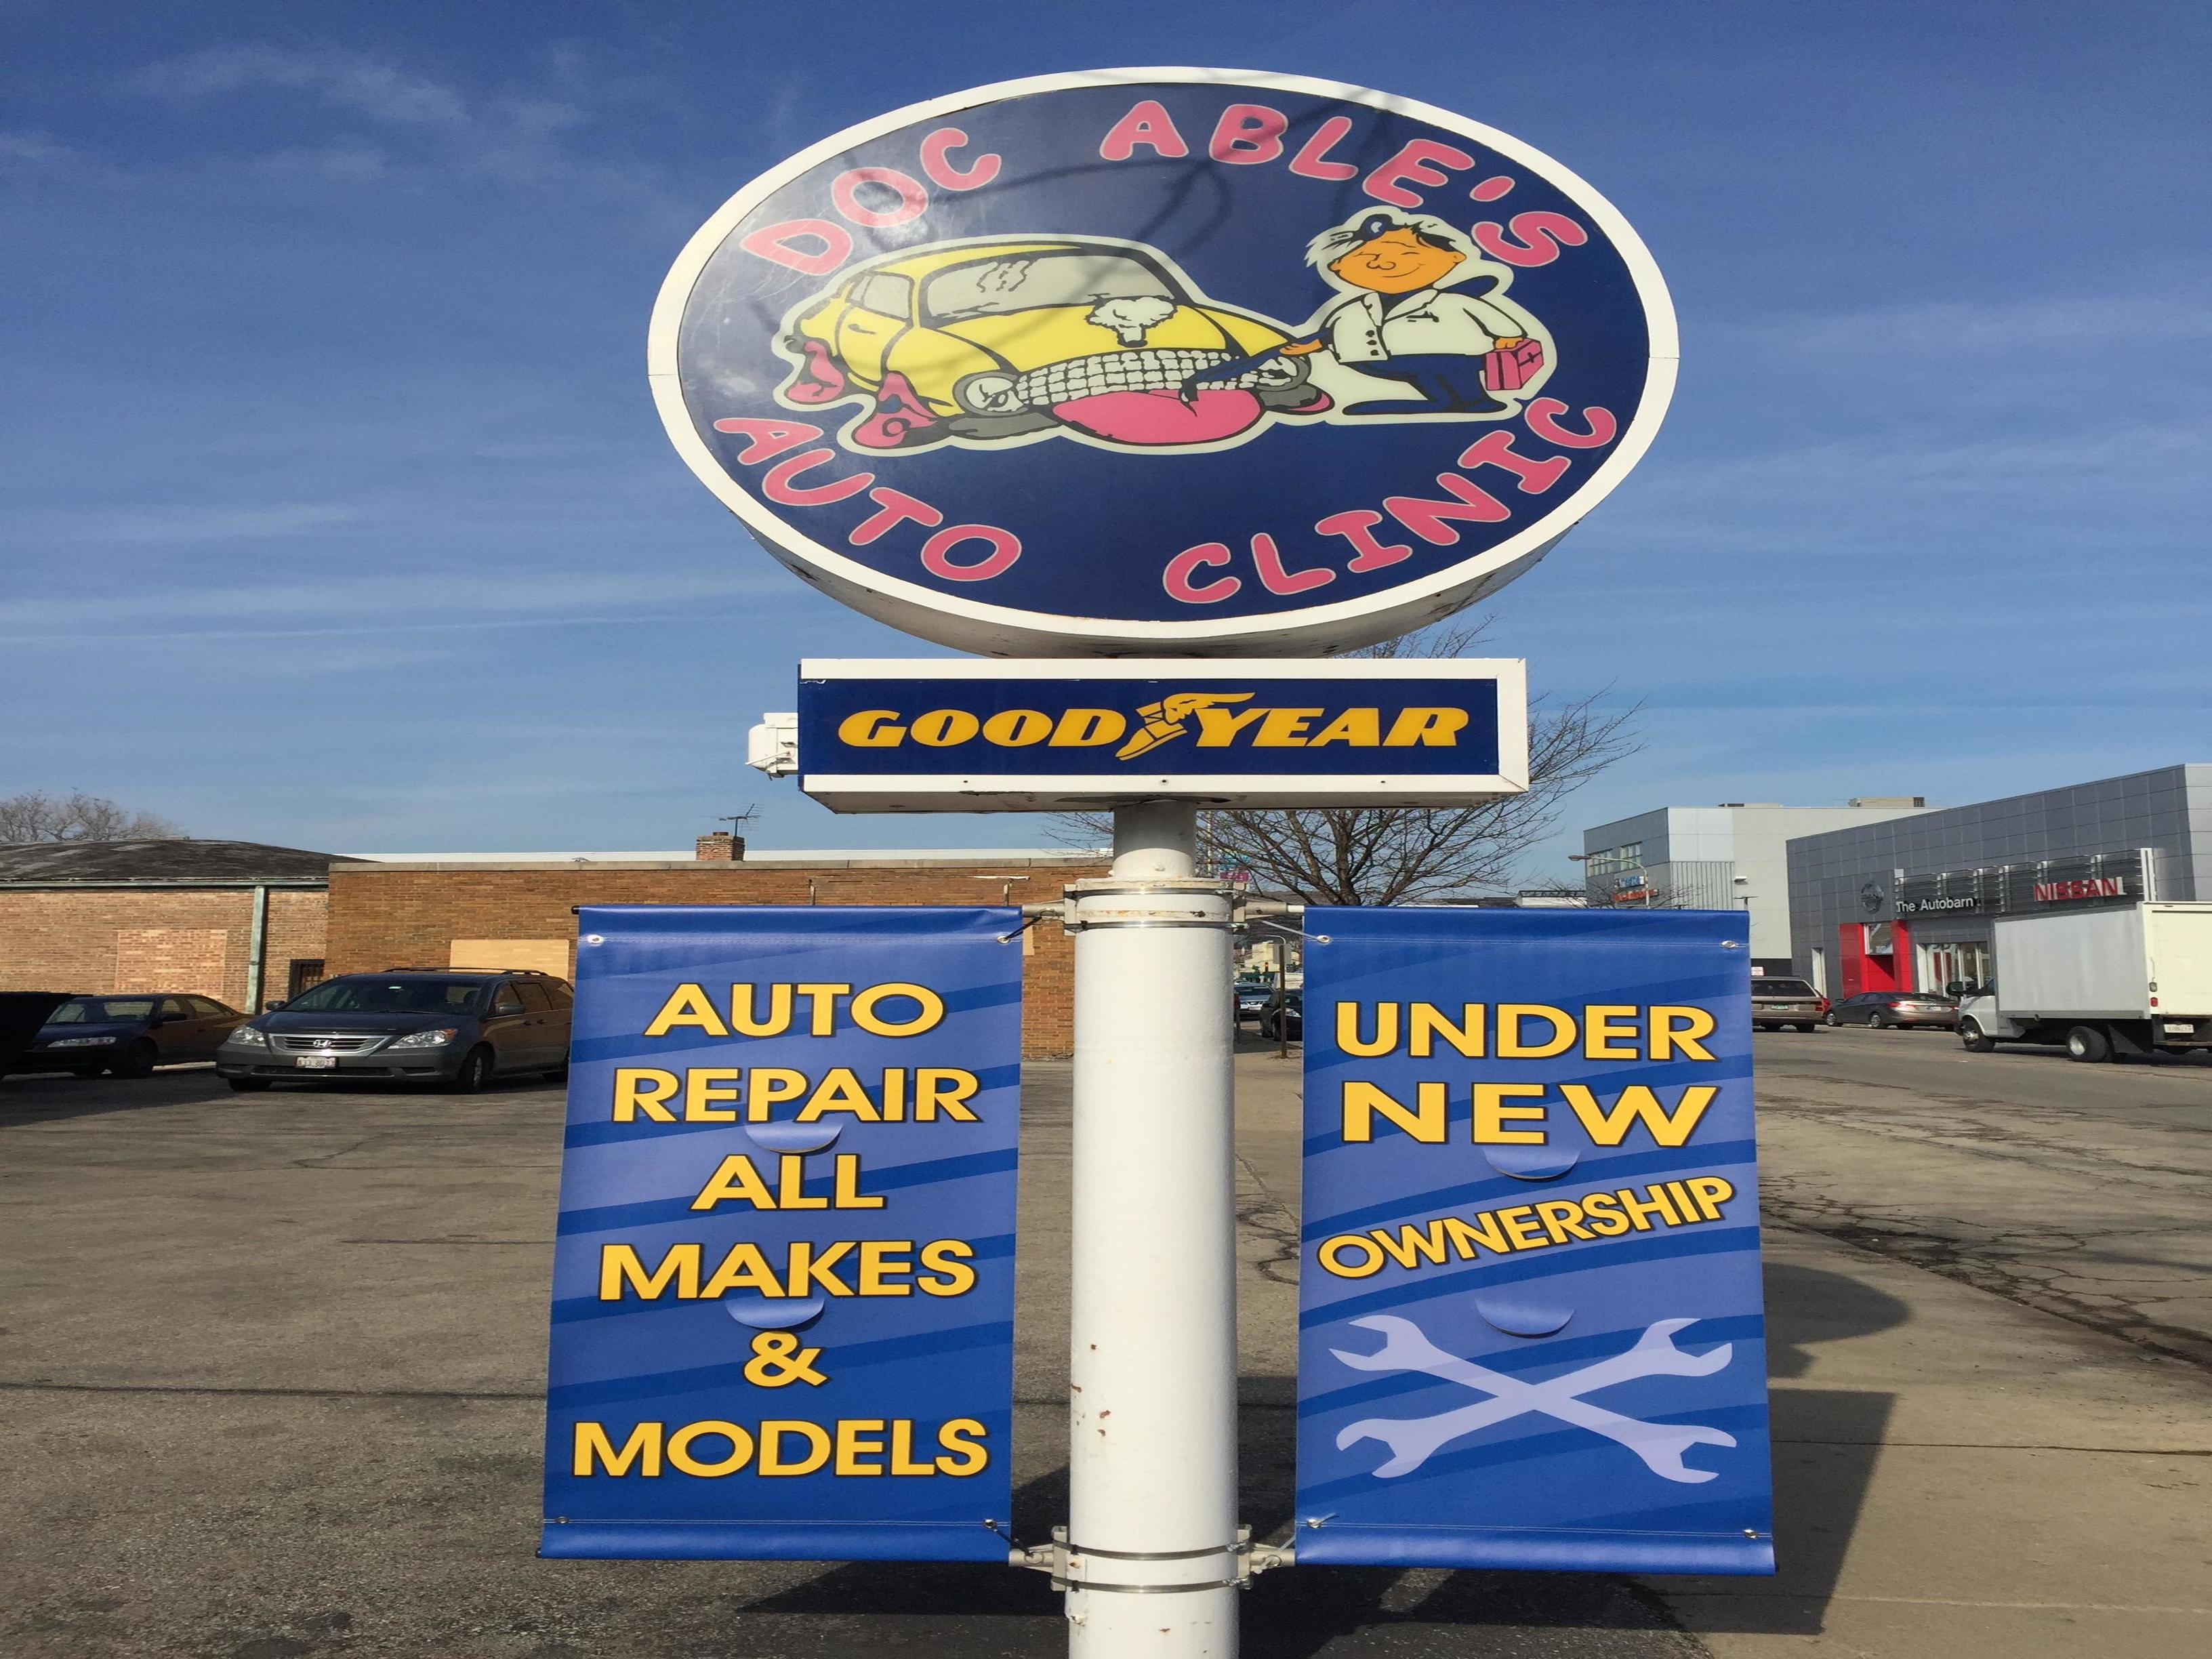 Doc Able's Auto Clinic, Inc. image 4